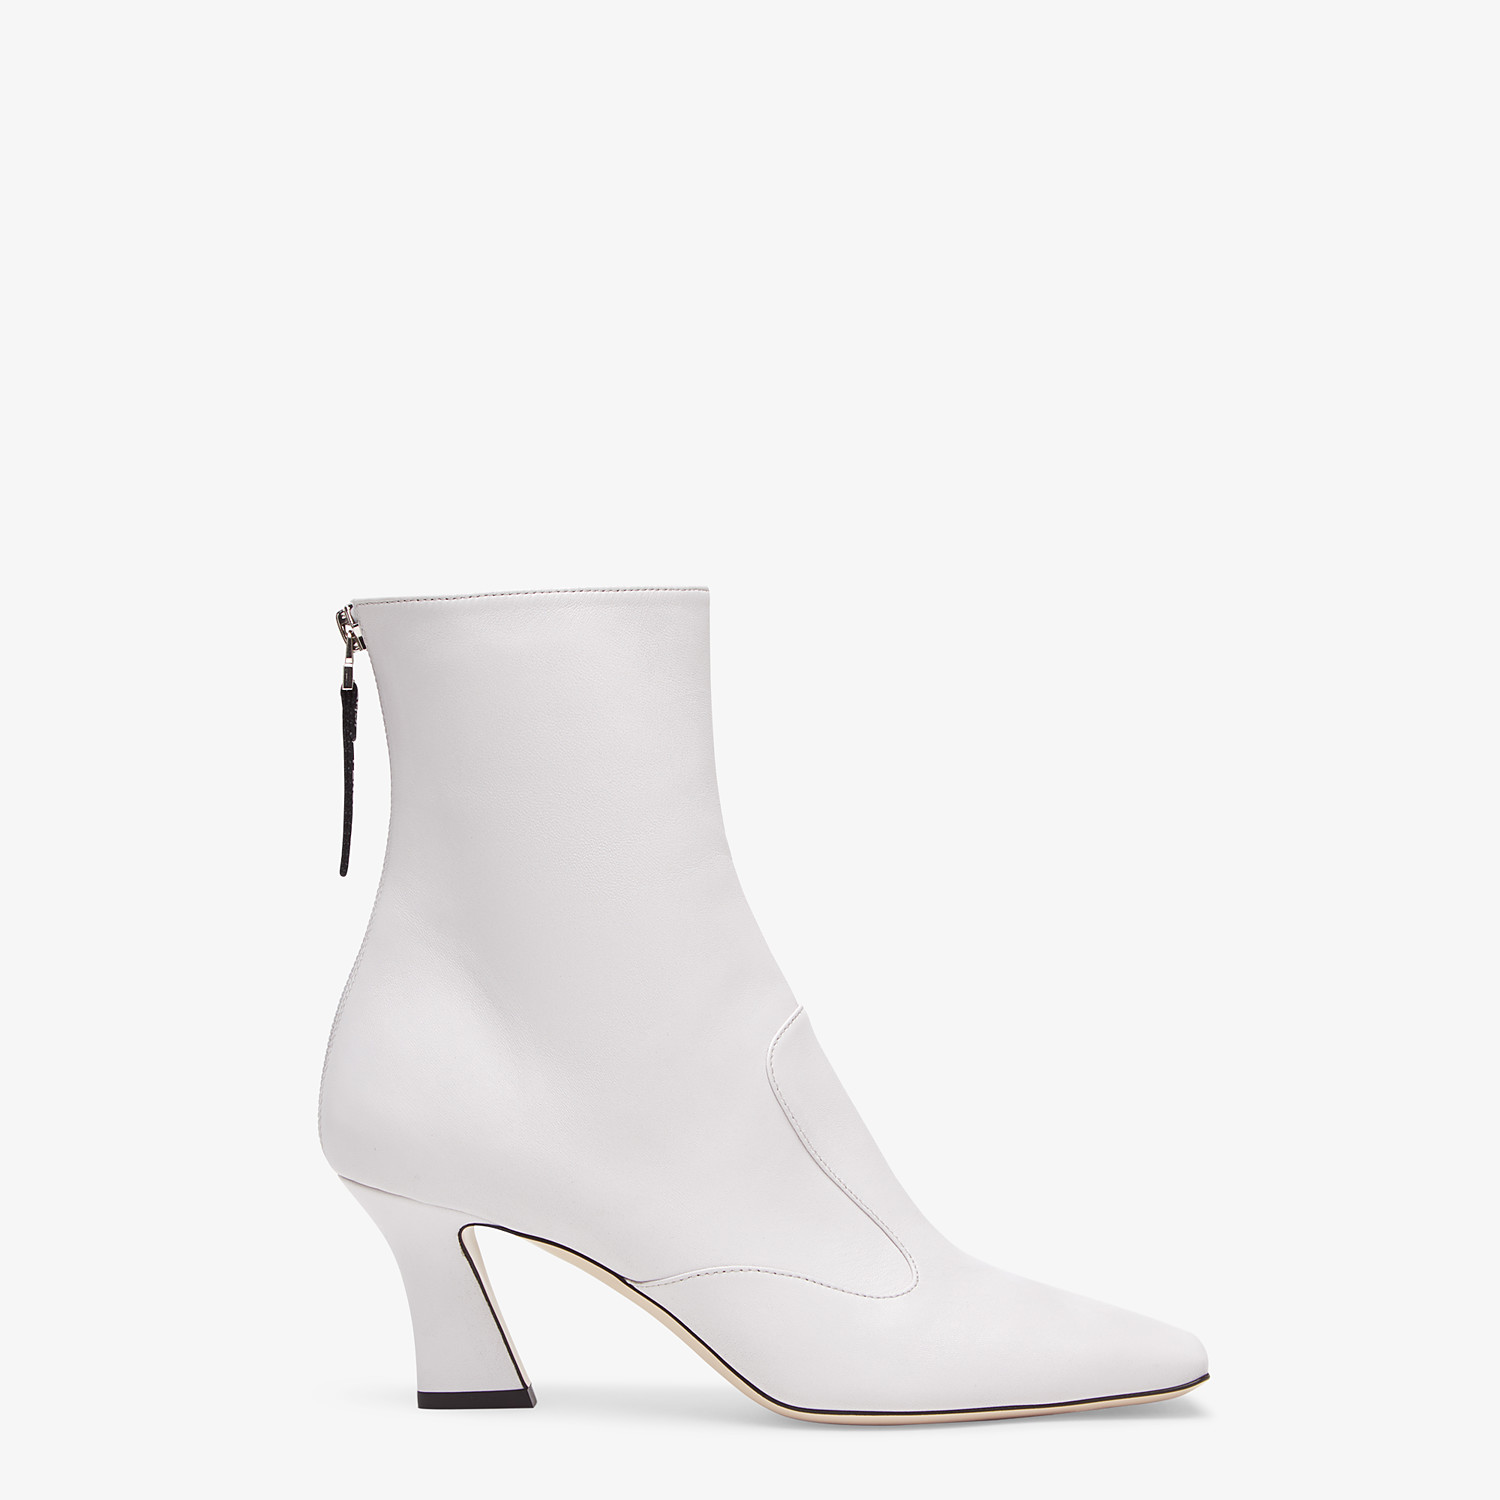 FENDI ANKLE BOOTS - White nappa leather booties - view 1 detail